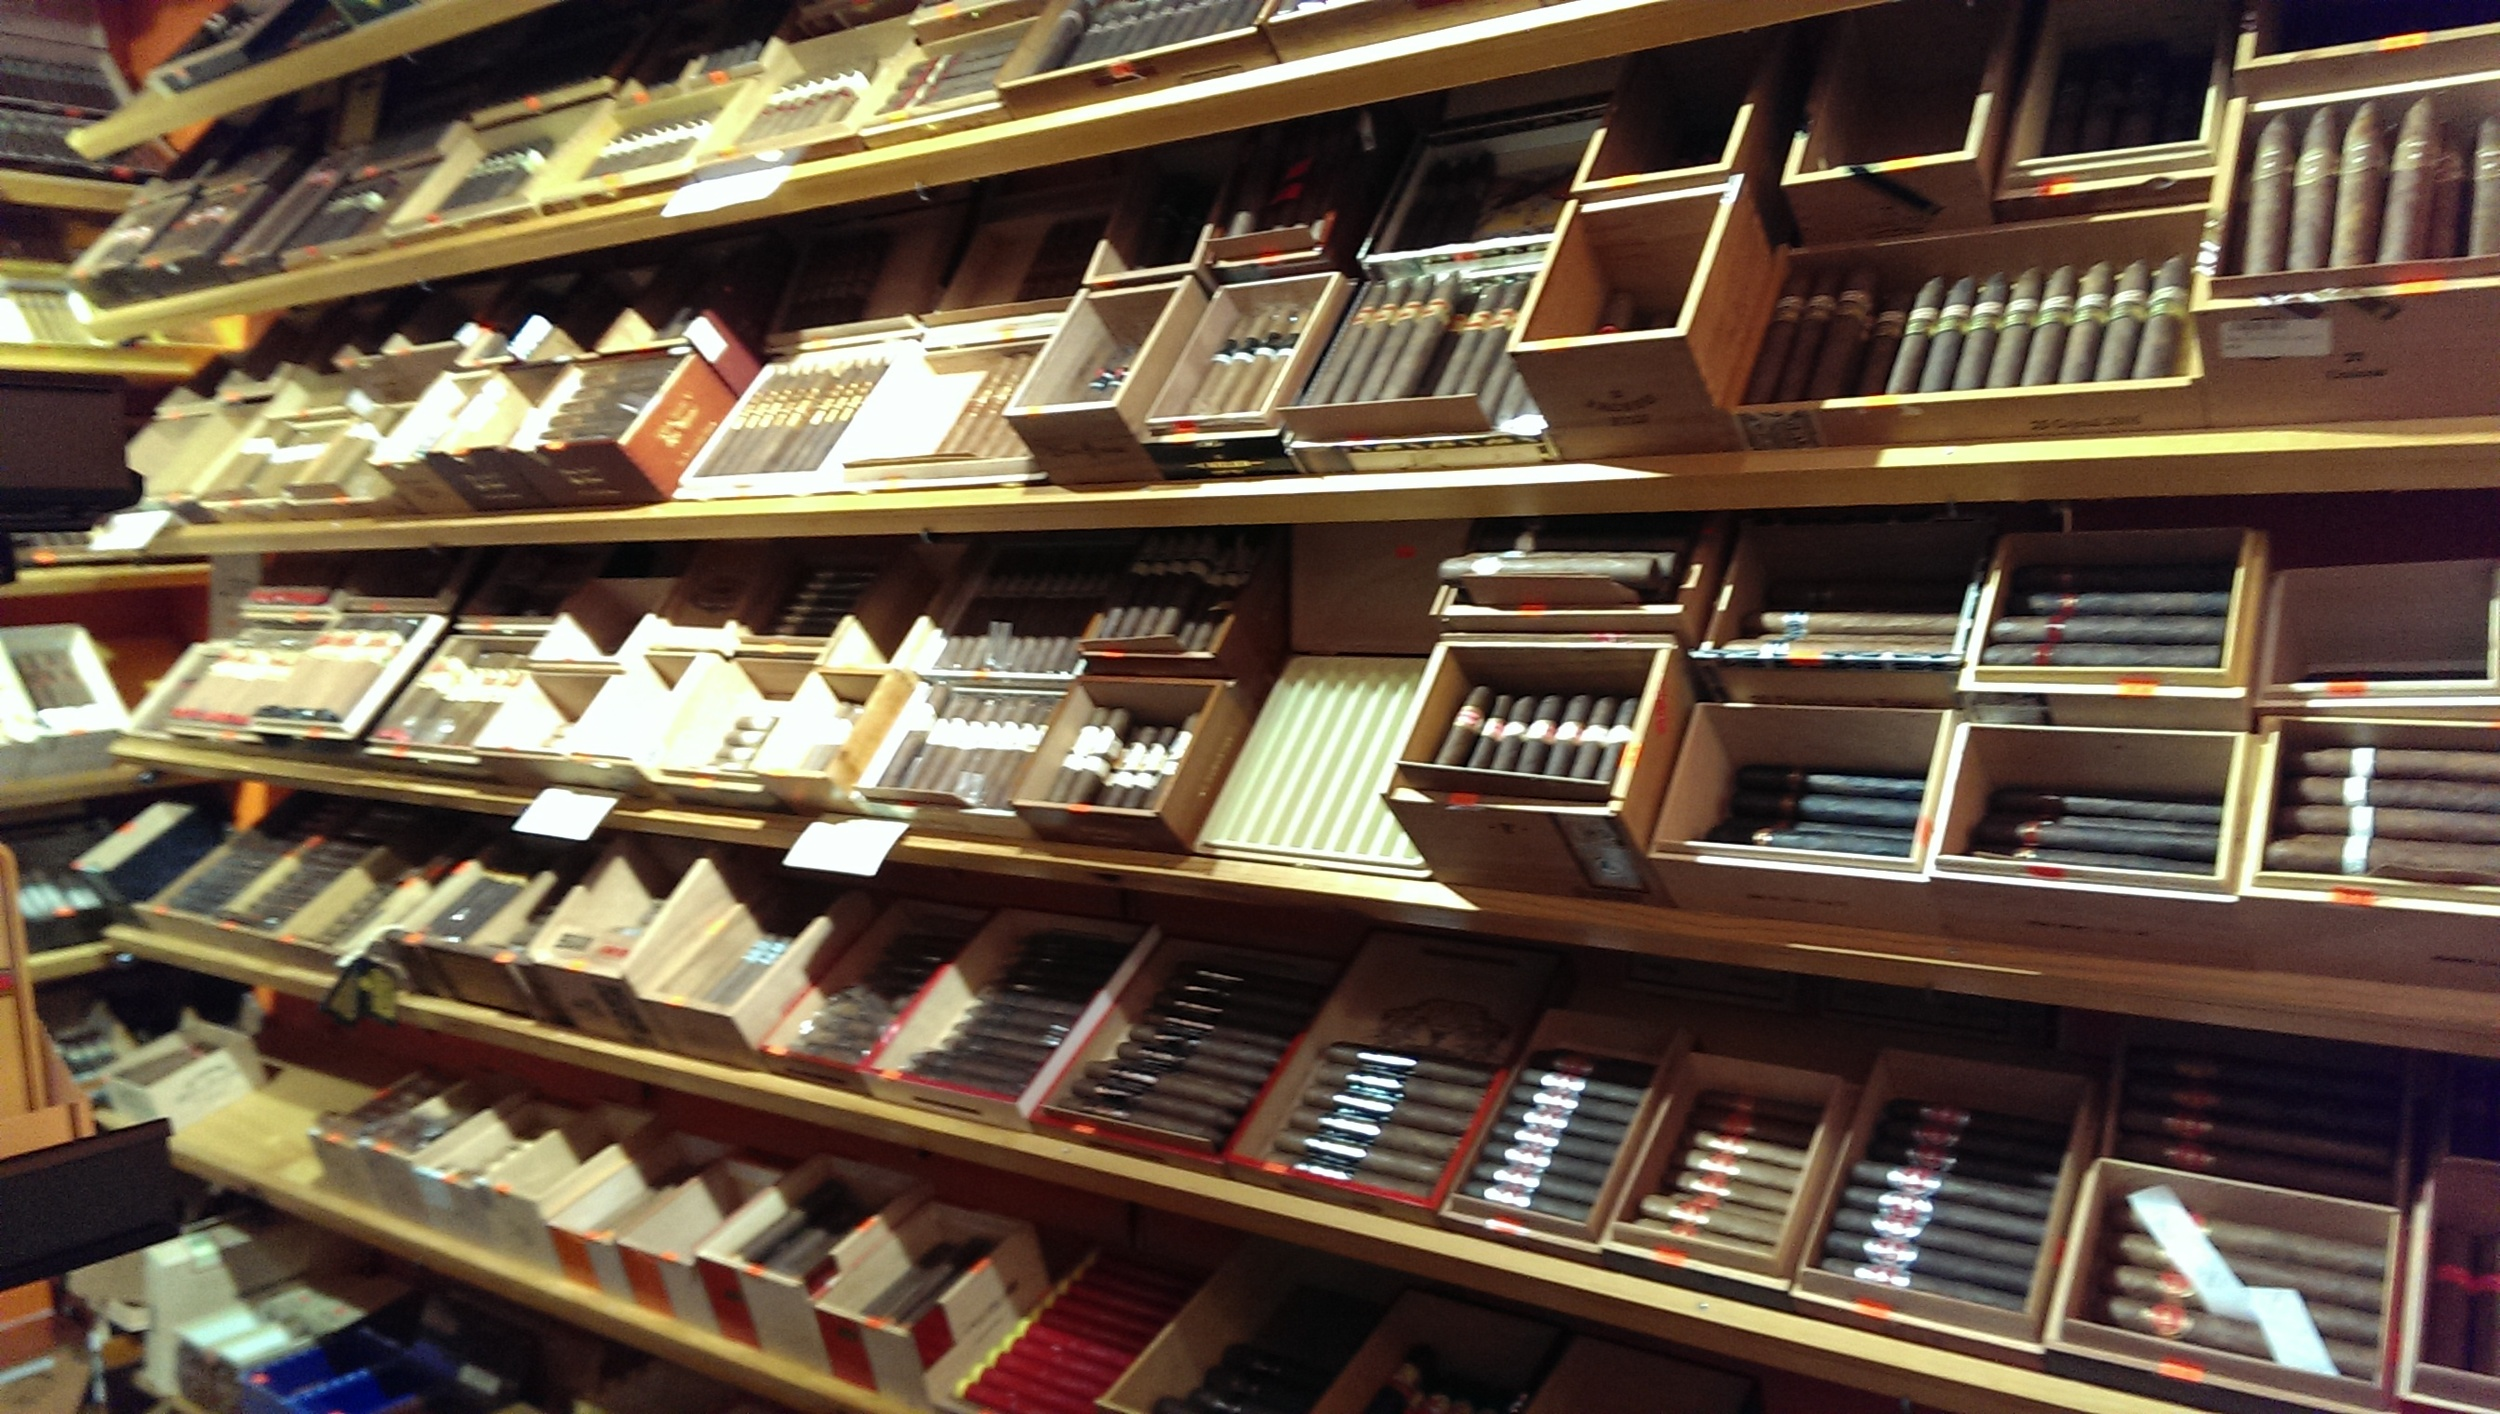 Cigars!? oh my.